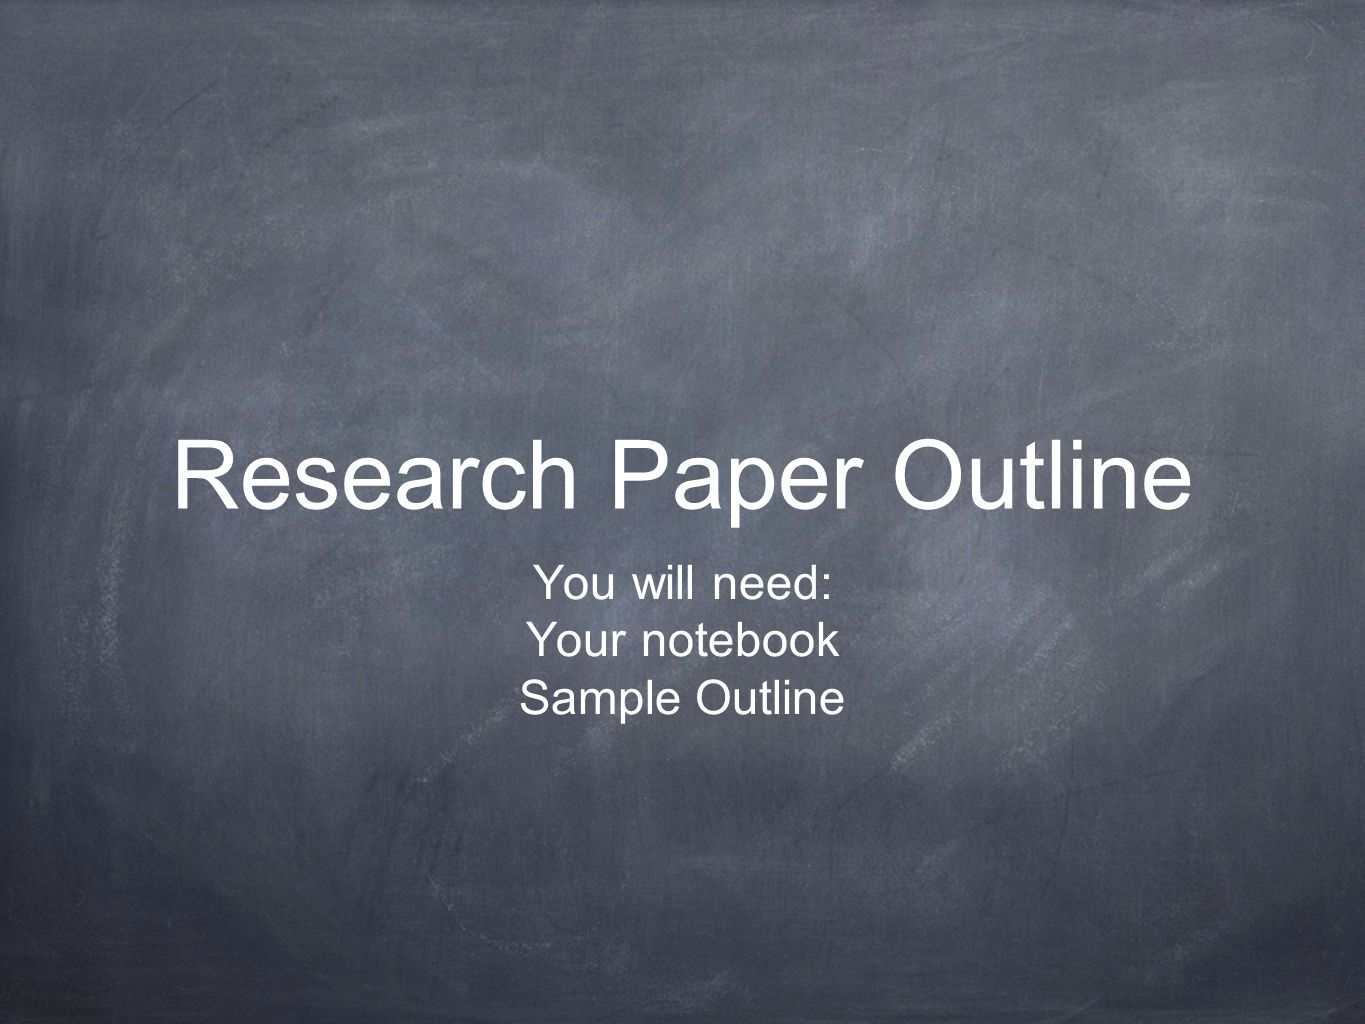 011 Outline For Research Paper Powerpoint Slide 1 Awesome Of Ppt Full